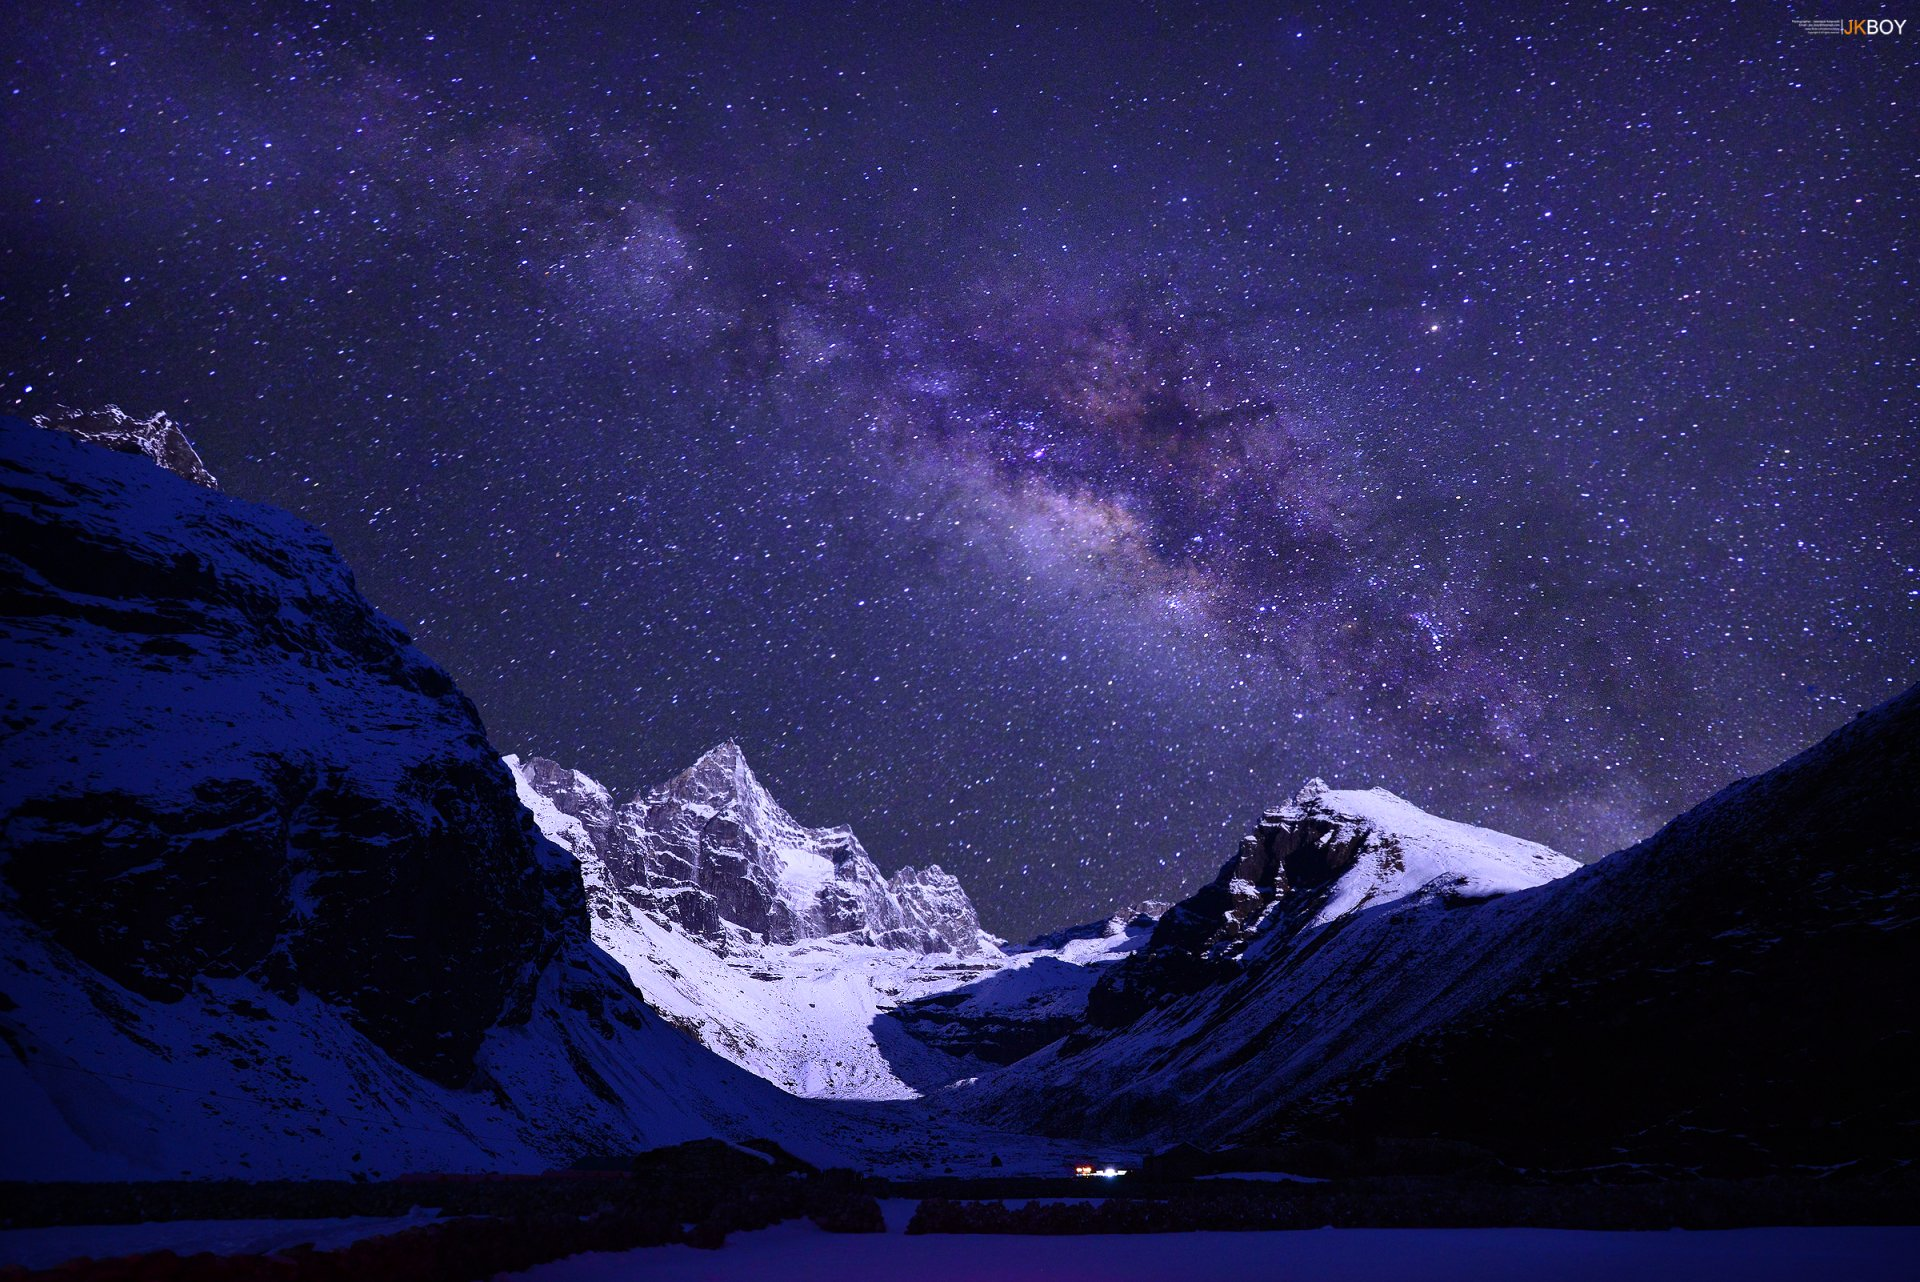 4 himalayas hd wallpapers background images wallpaper - Himalaya pictures wallpaper ...